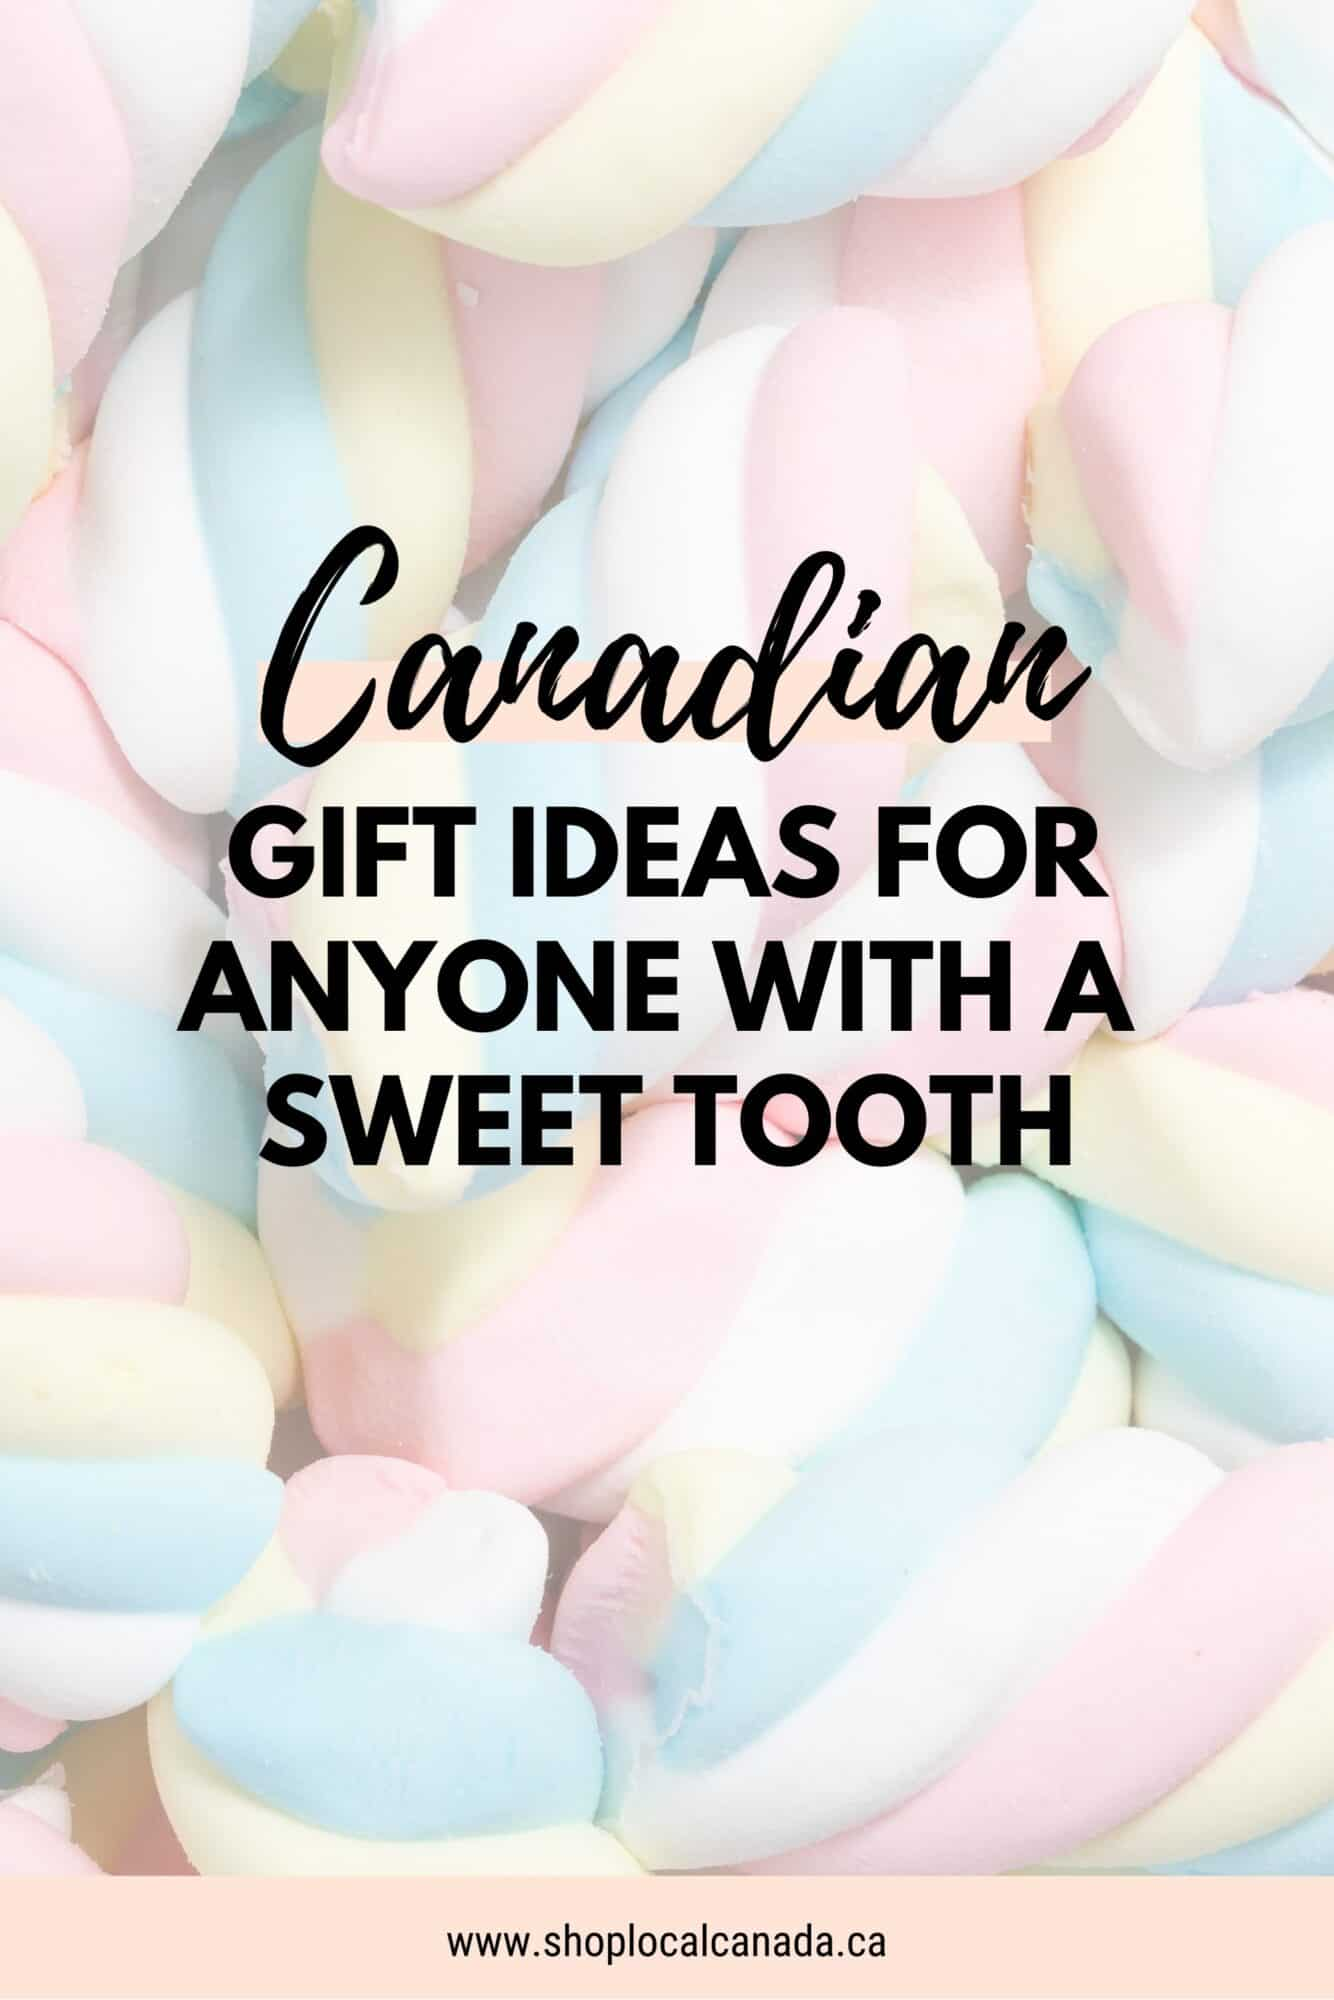 Gift Ideas For Anyone With A Sweet Tooth